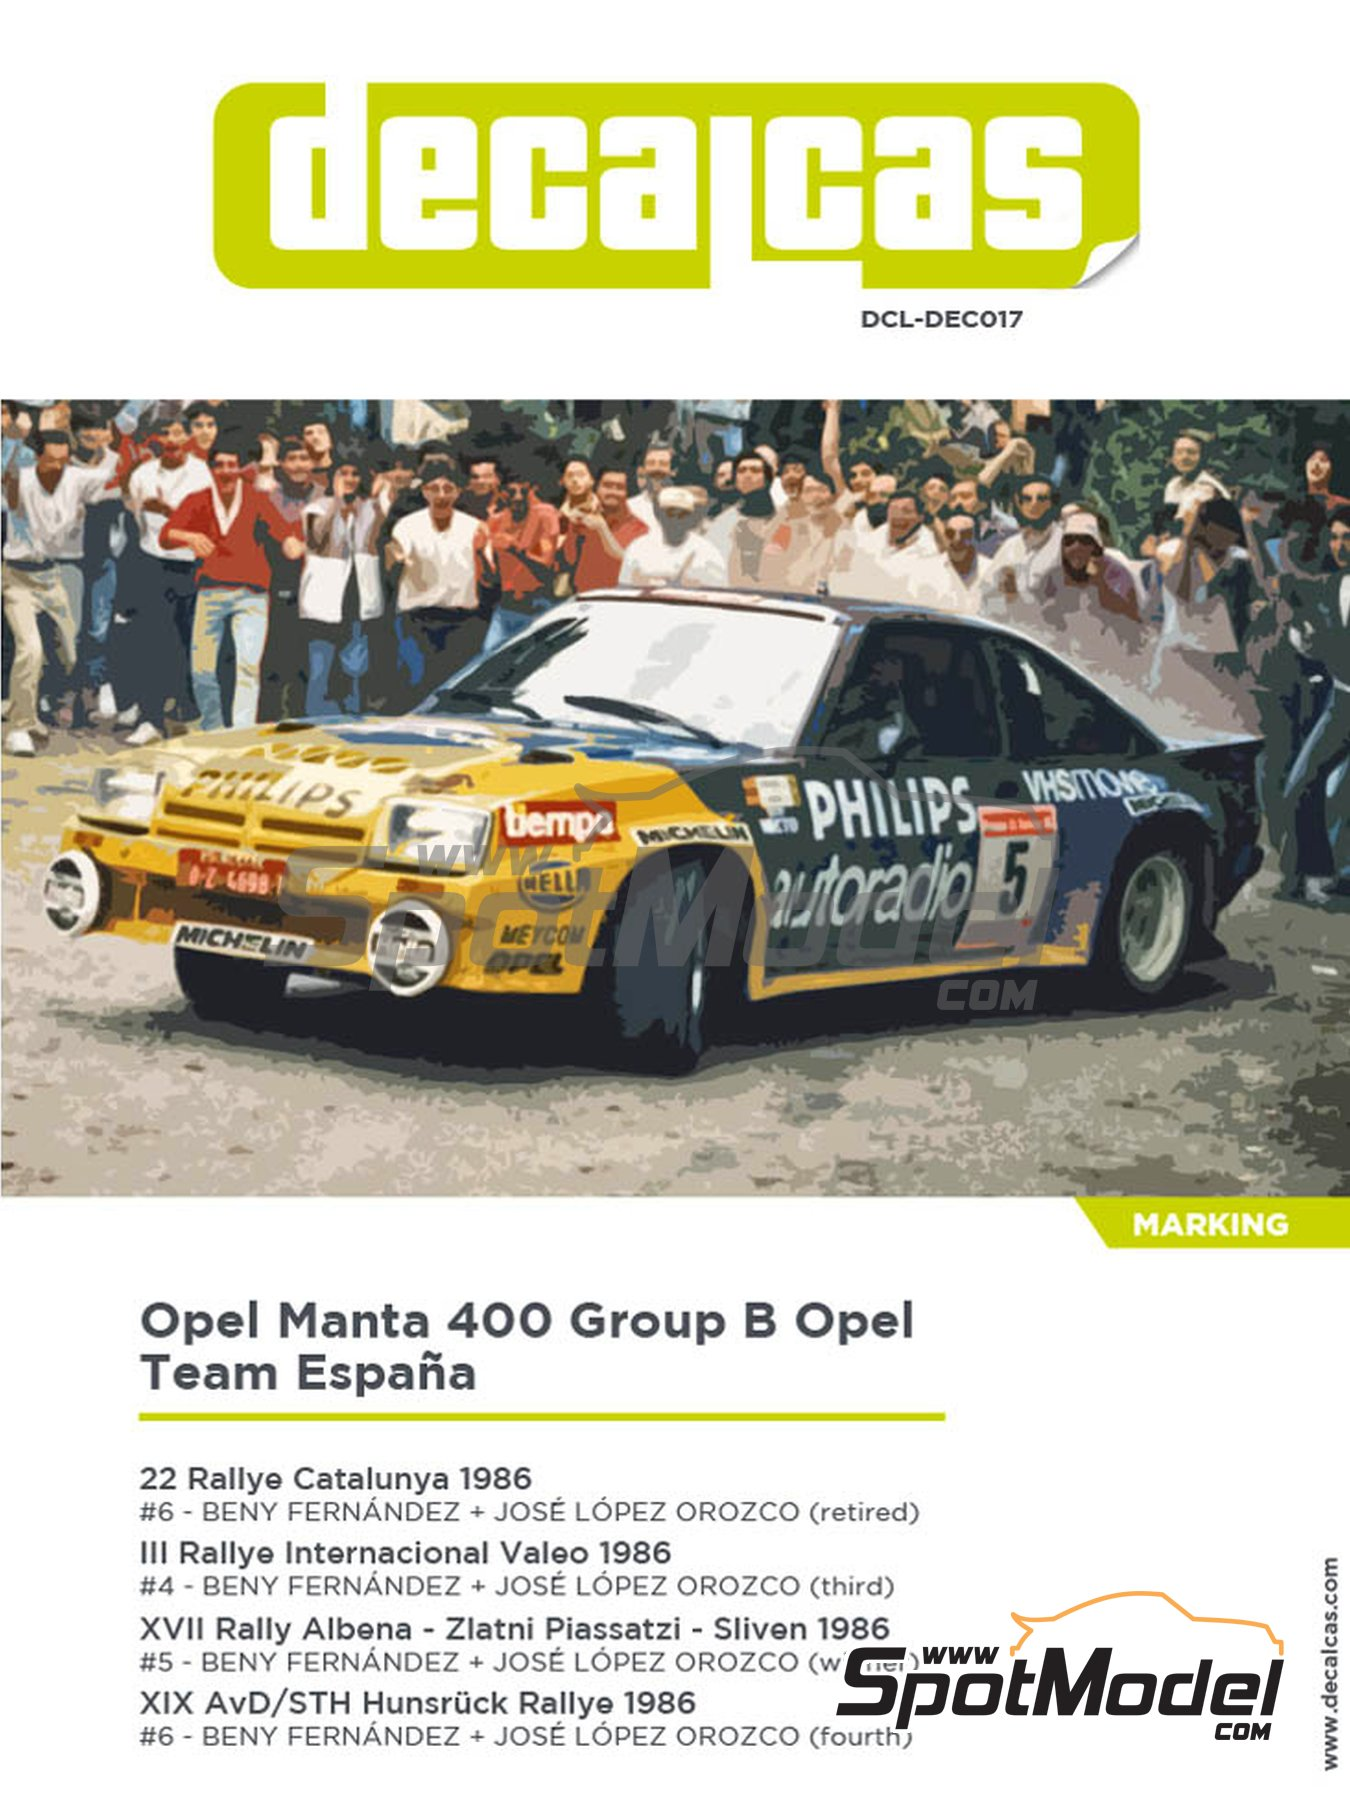 Opel Manta 400 Group B Opel Team España - AvD/STH Hunsrück Rallye, Valeo Rally, Rallye Catalunya 1986 | Marking / livery in 1/24 scale manufactured by Decalcas (ref. DCL-DEC017) image